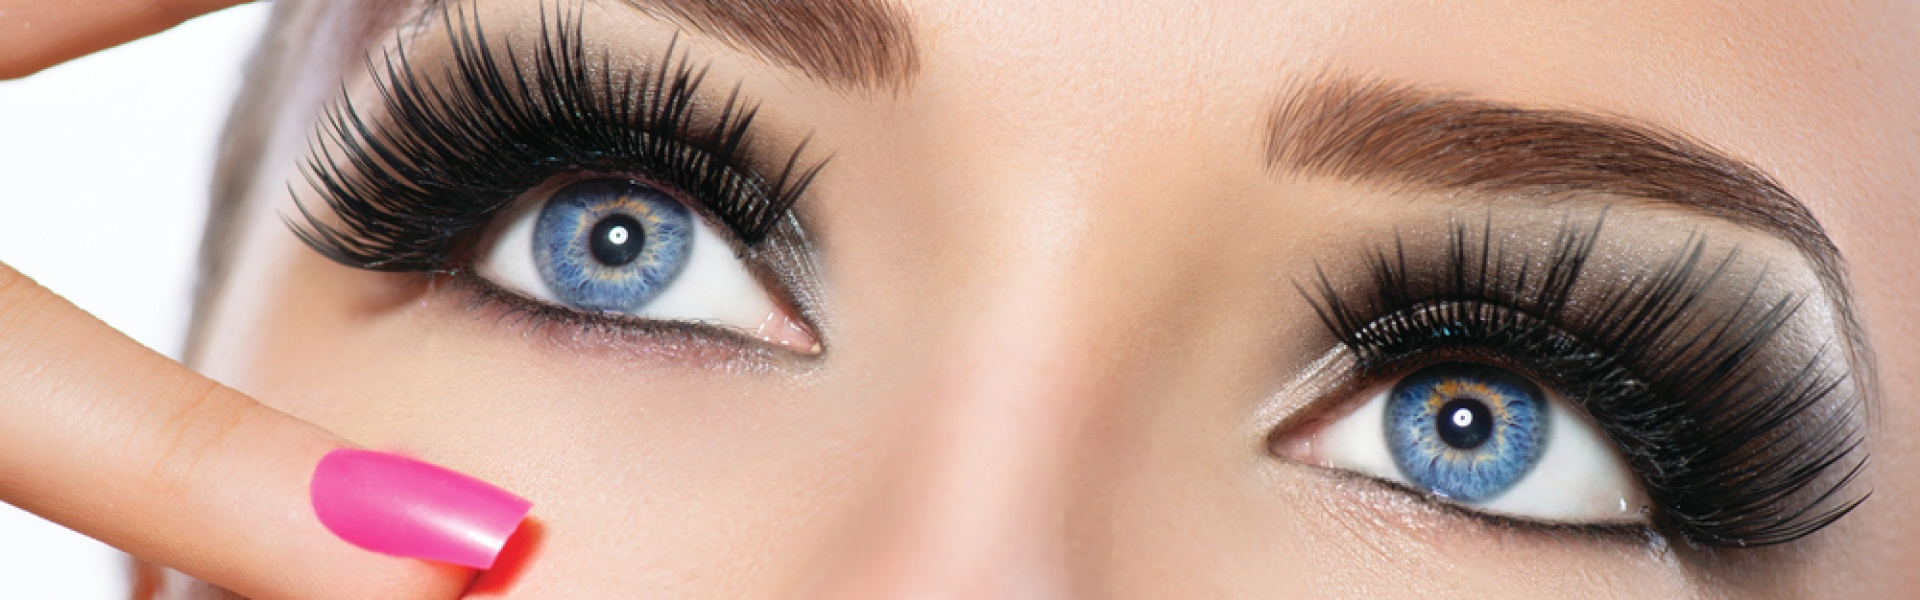 10 Tips For Beautiful Eyelash Growth